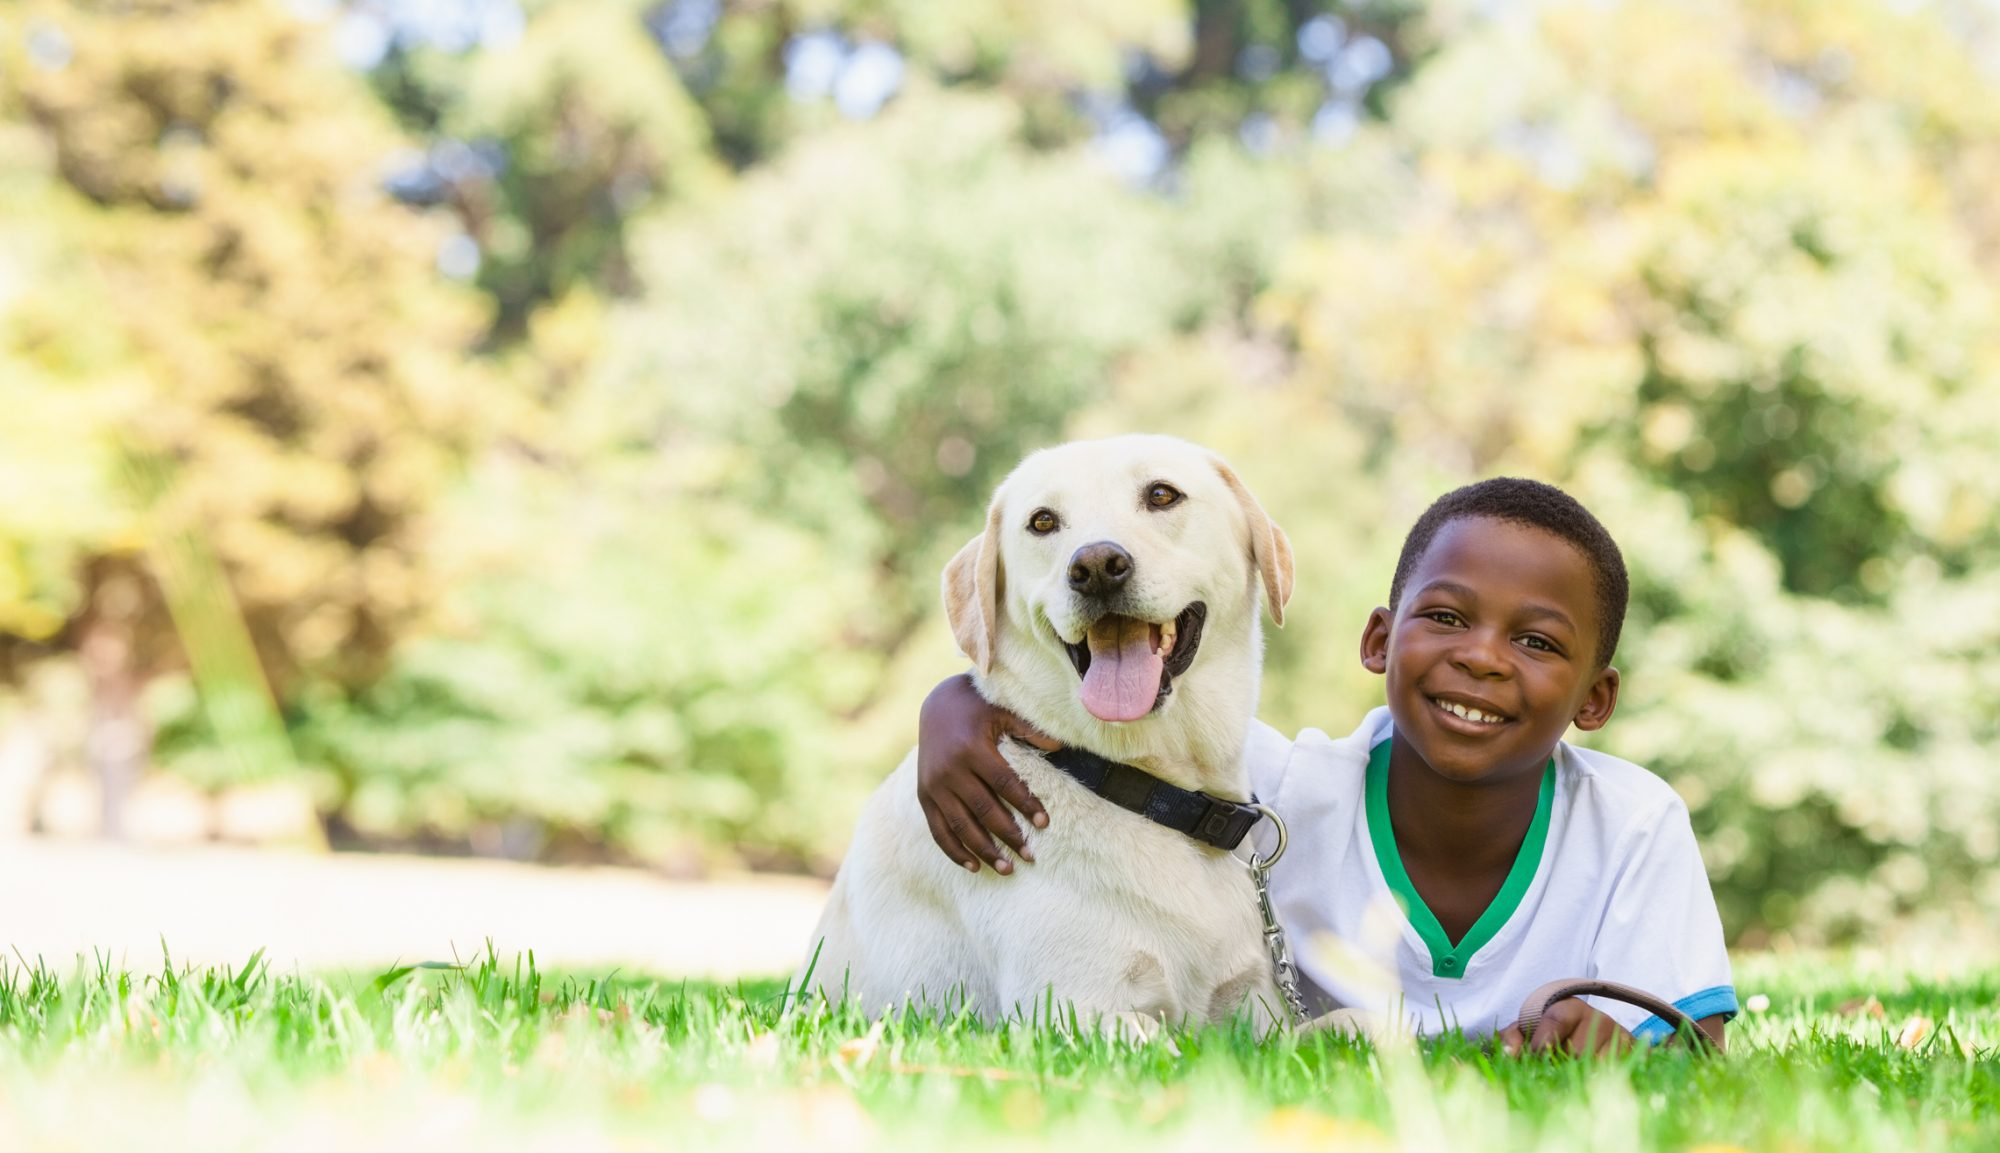 Young Boy with Labrador Retriever in Grass Field